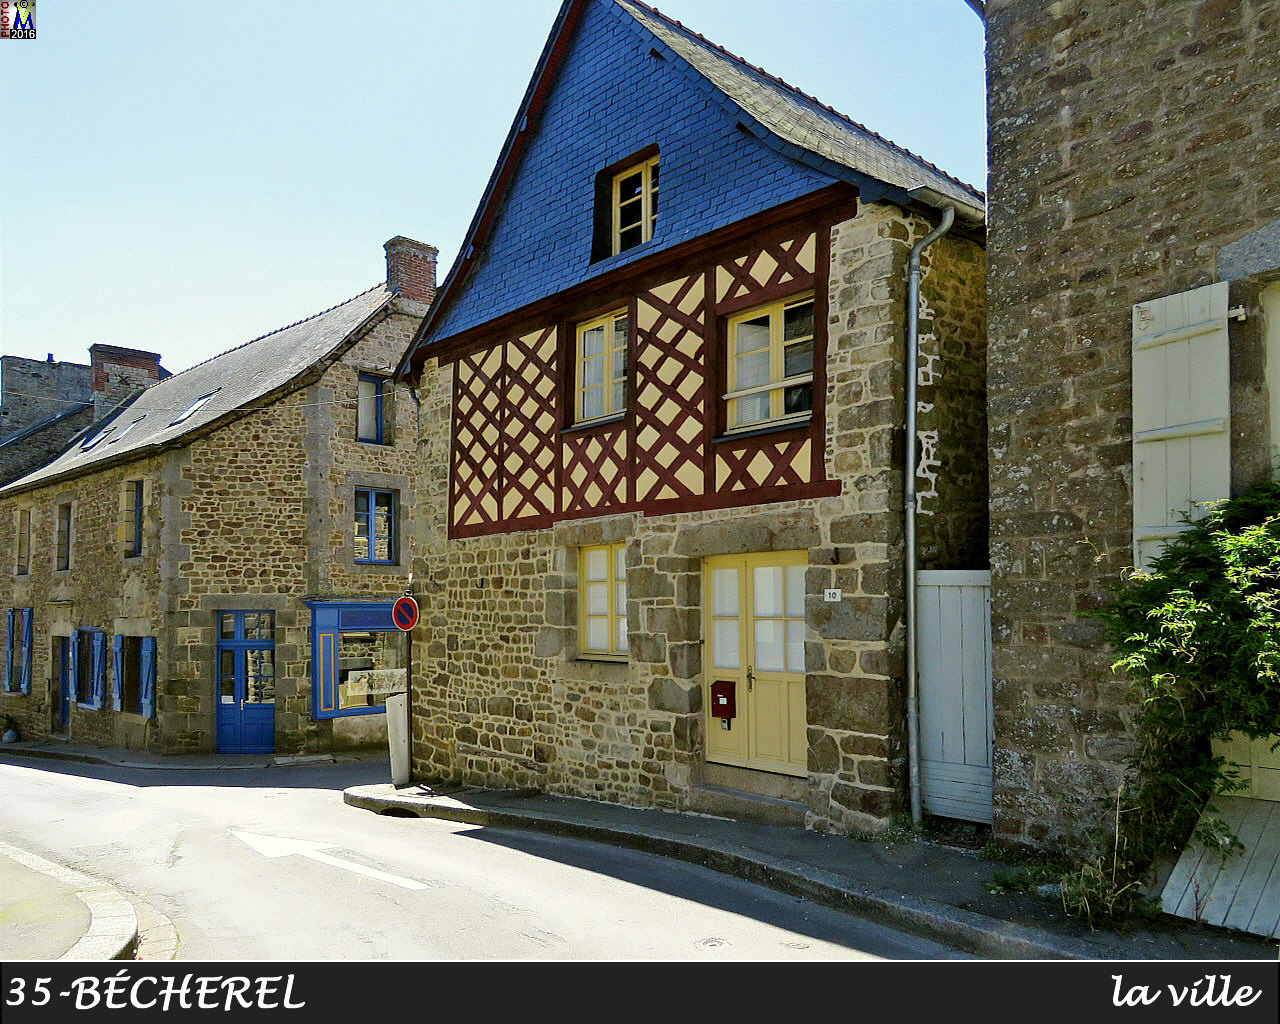 35BECHEREL_ville_102.jpg